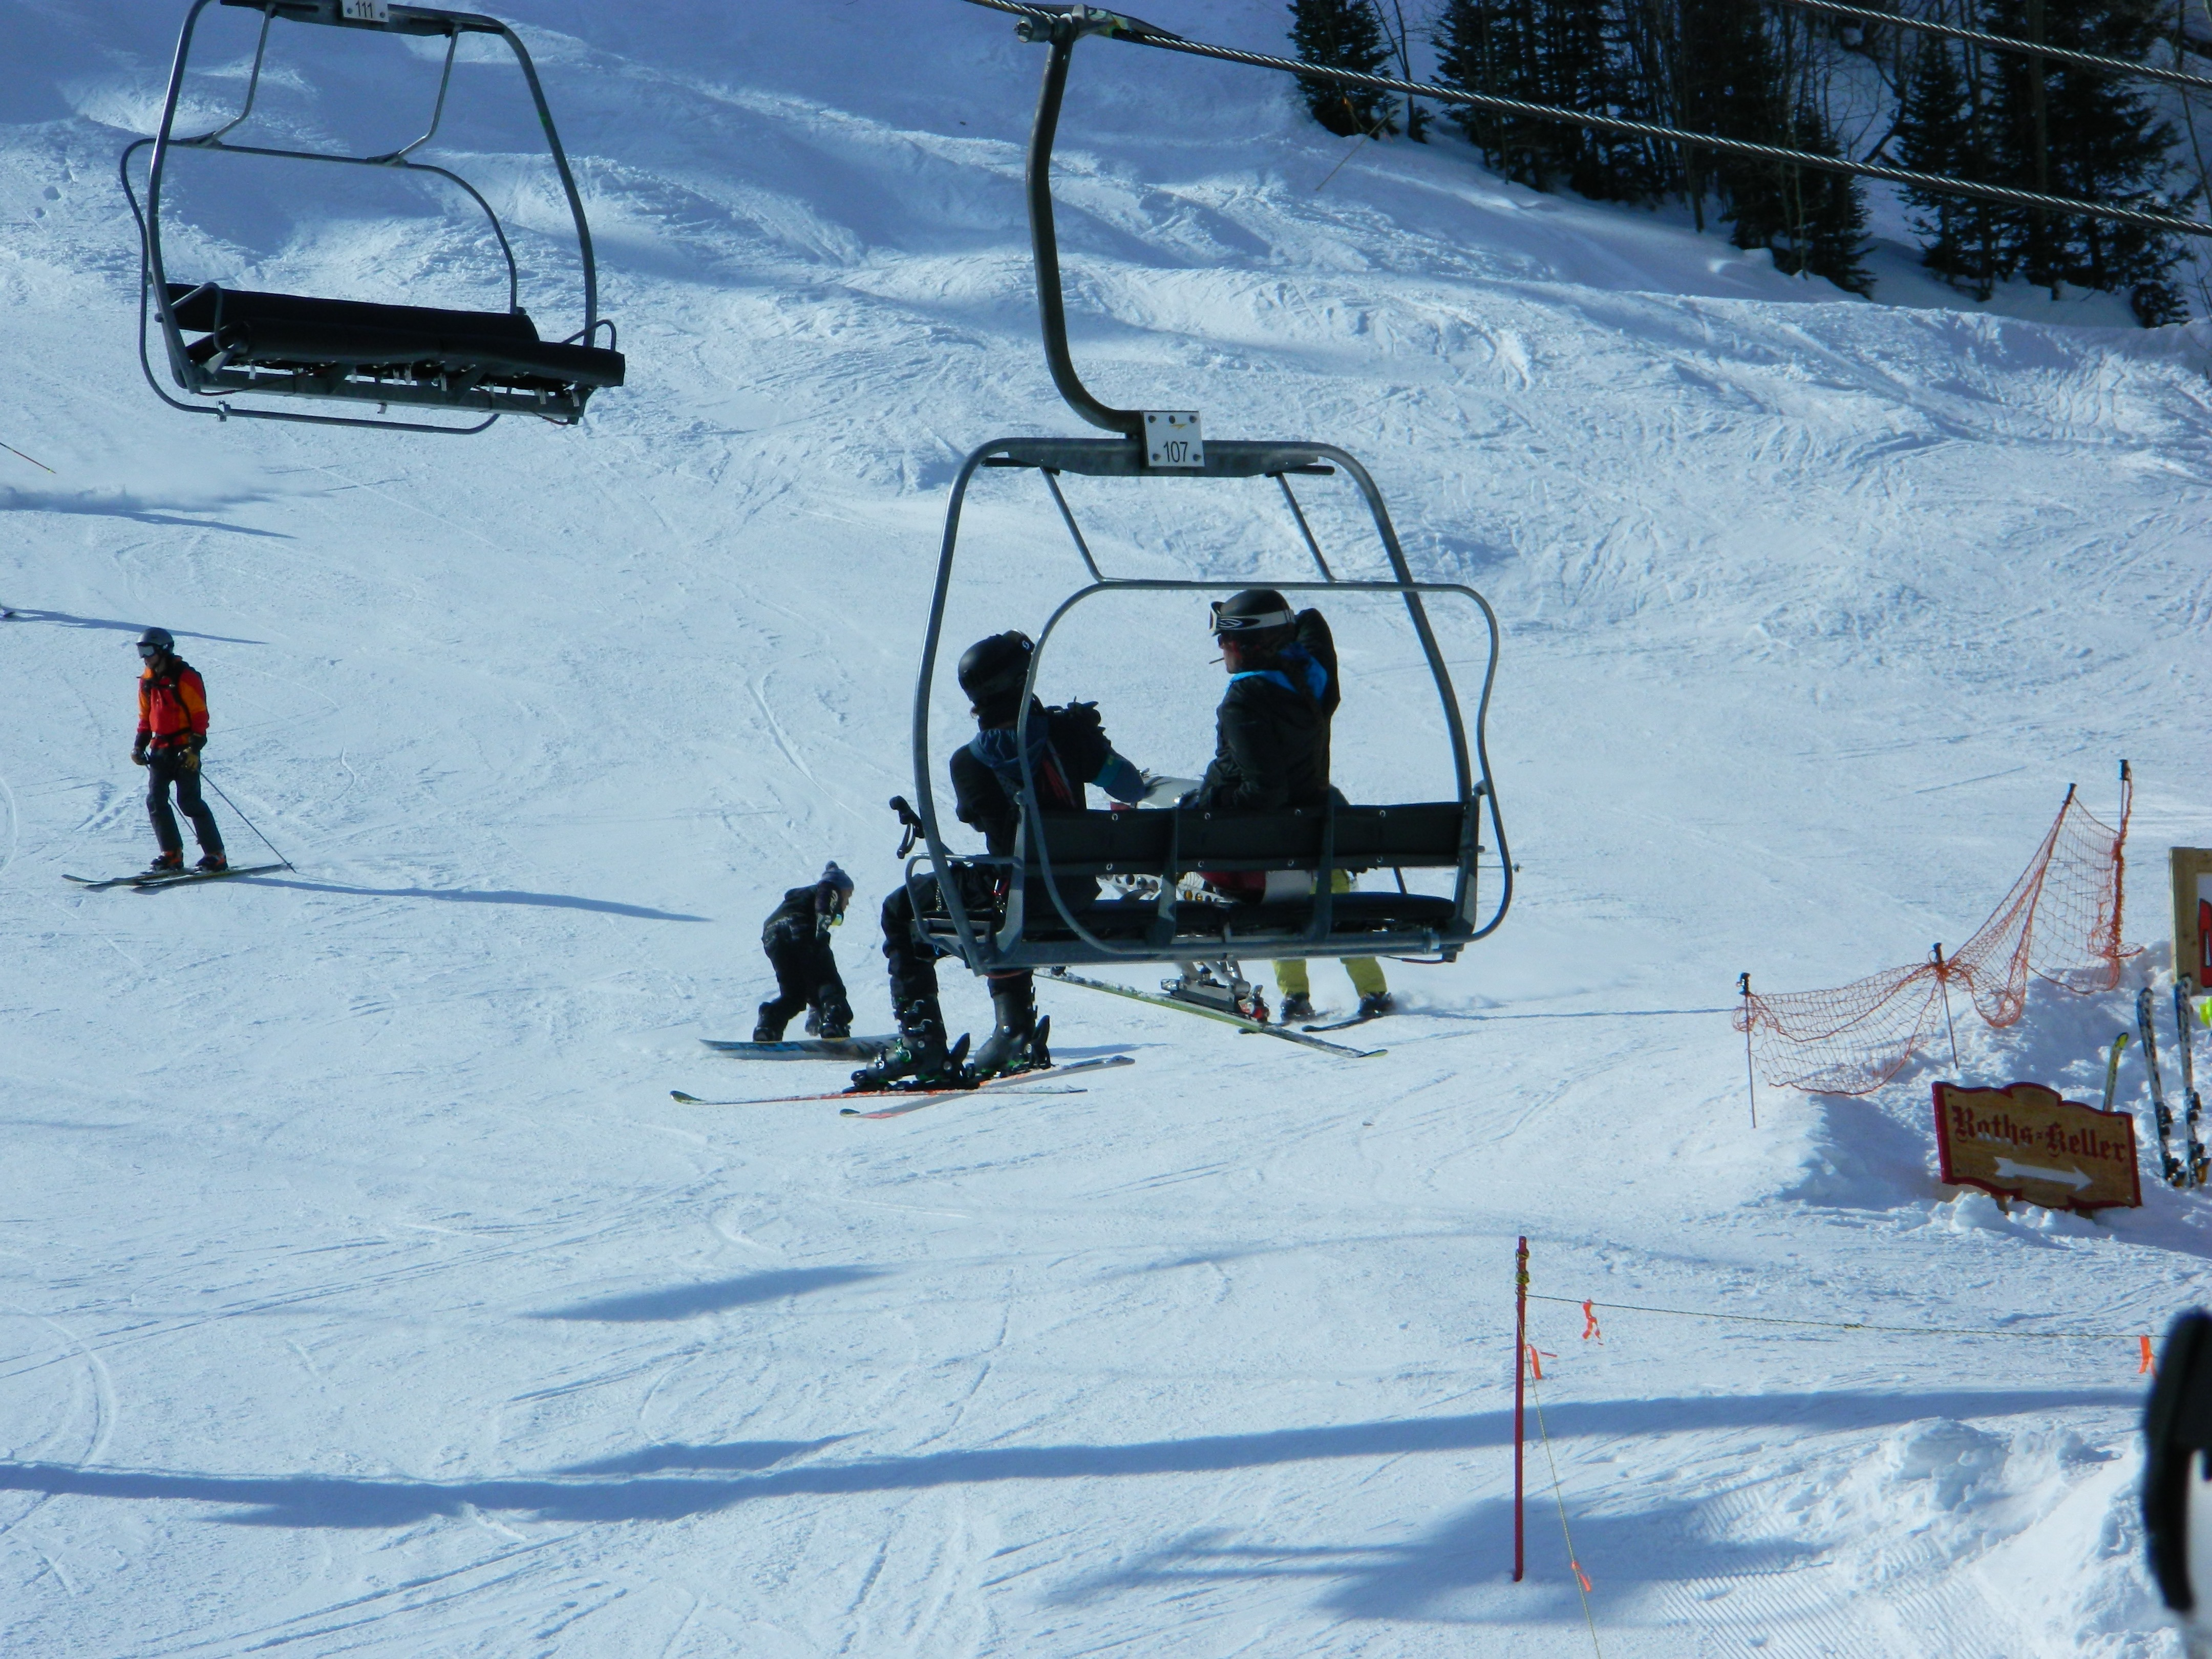 A disabled skier in a ski chair and companion ride a chairlift near the base of Taos Ski Valley.